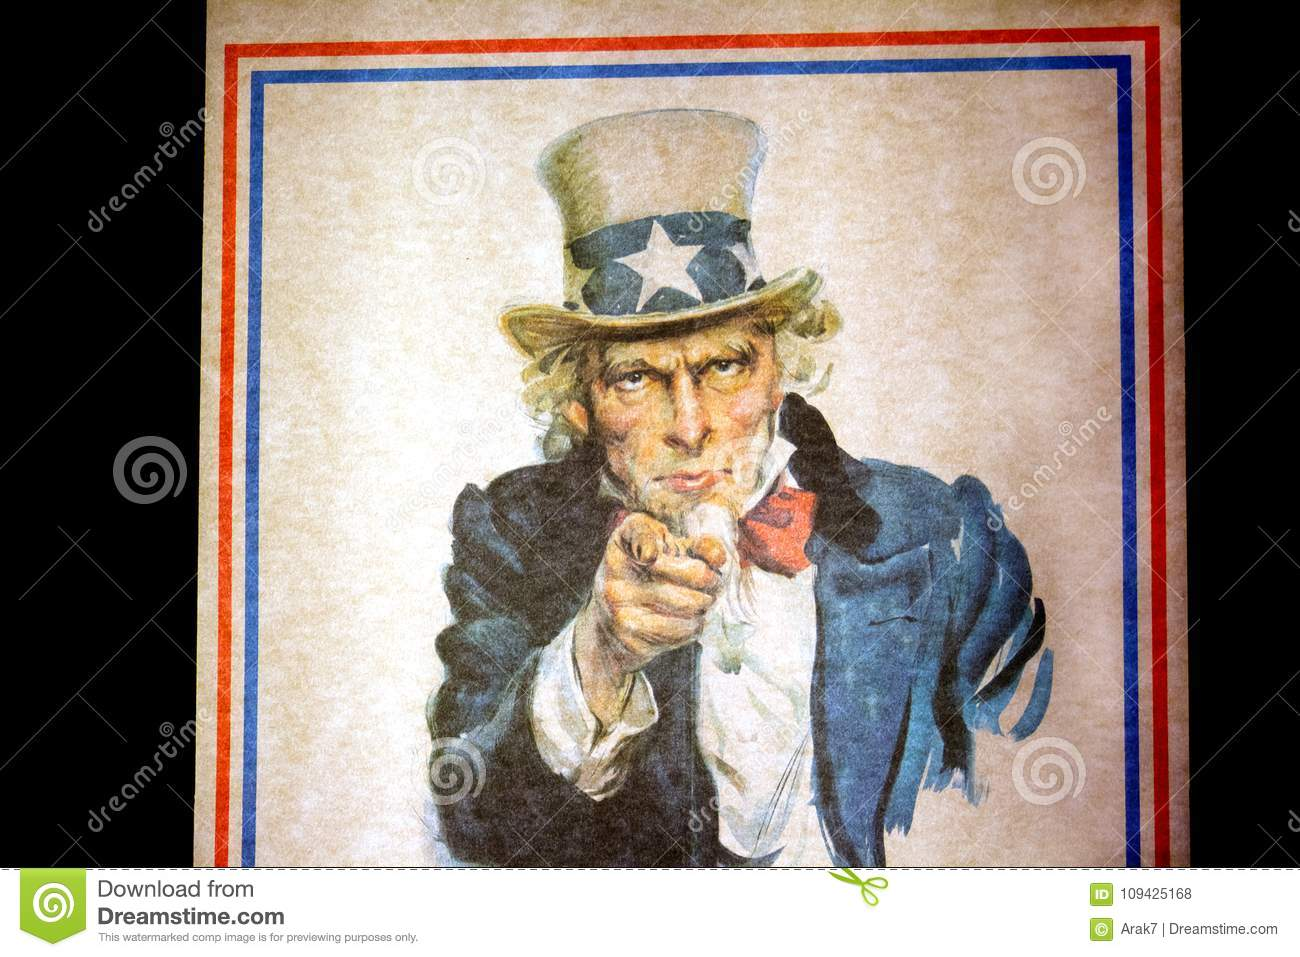 Uncle Sam I Want You For The U S Army Recruitment Poster By Jam Editorial Stock Photo Image Of Government Recruiter 109425168